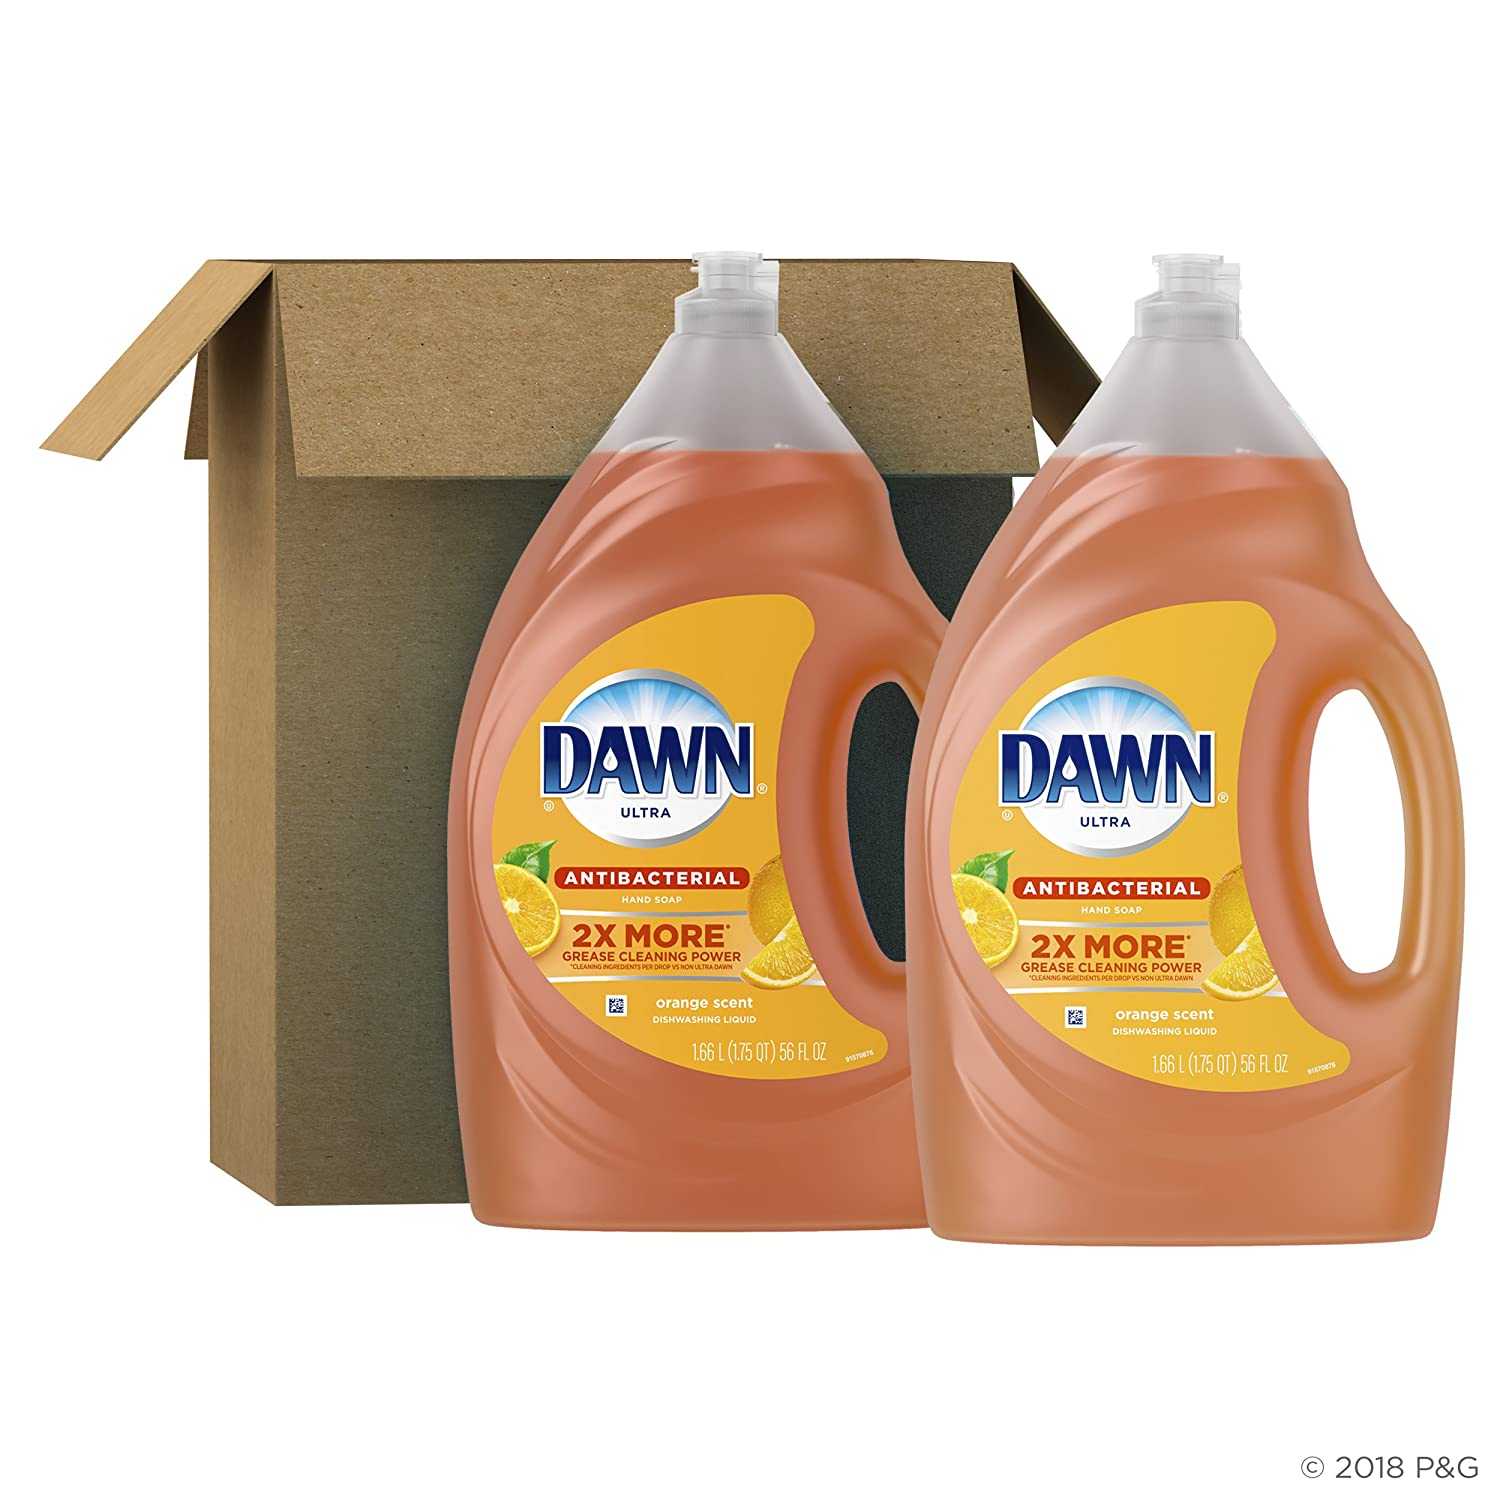 Dawn Ultra 2 Count Antibacterial Dishwashing Liquid Dish Soap, Orange Scent, 56 Fluid Ounce